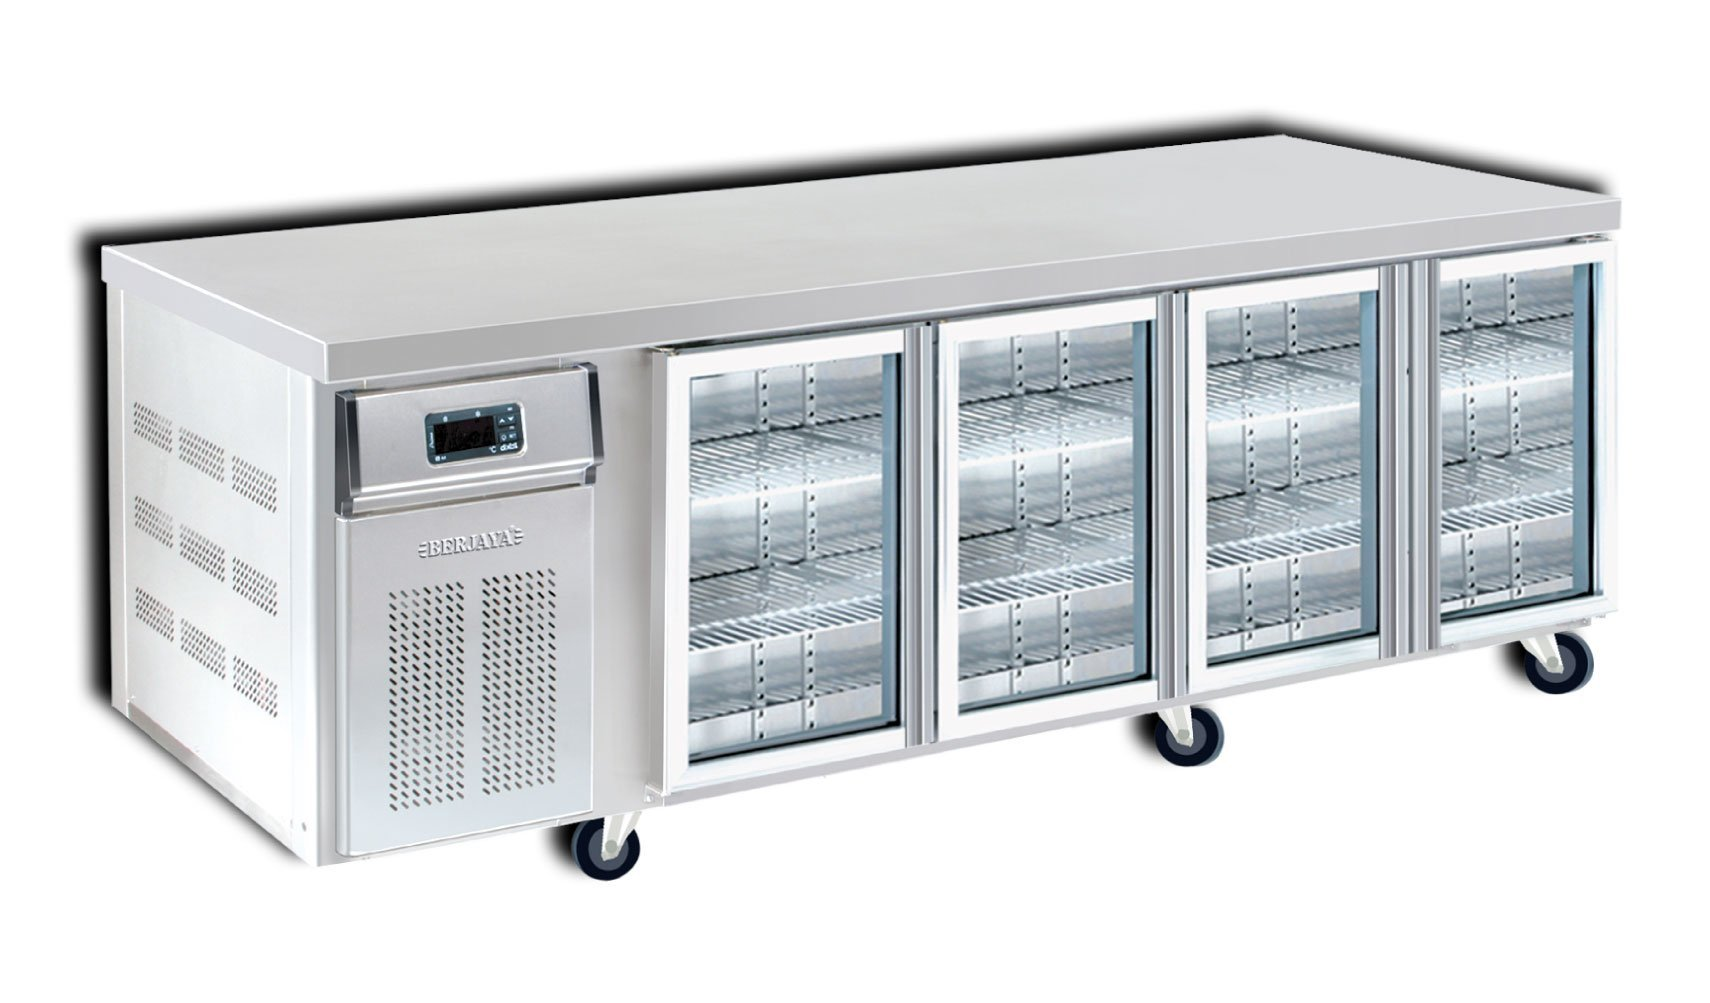 Semak BC2400-G Counter Bar Chillers without Splashback